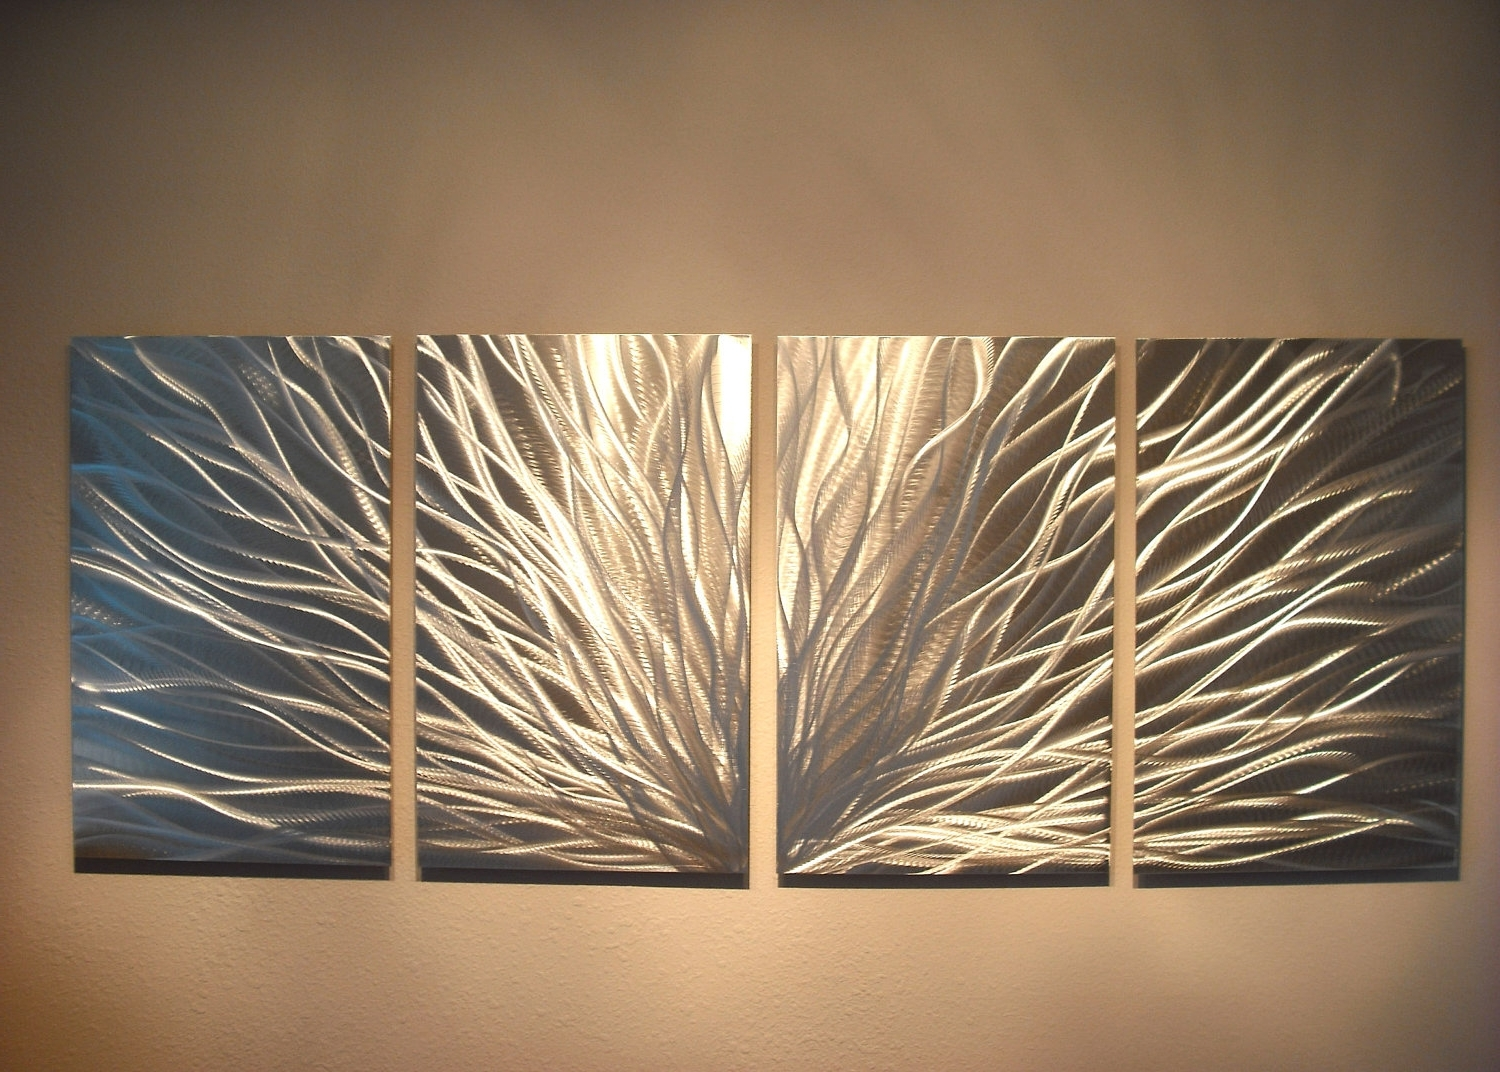 Radiance – Abstract Metal Wall Art Contemporary Modern Decor Within Well Liked Cheap Modern Wall Art (Gallery 1 of 15)